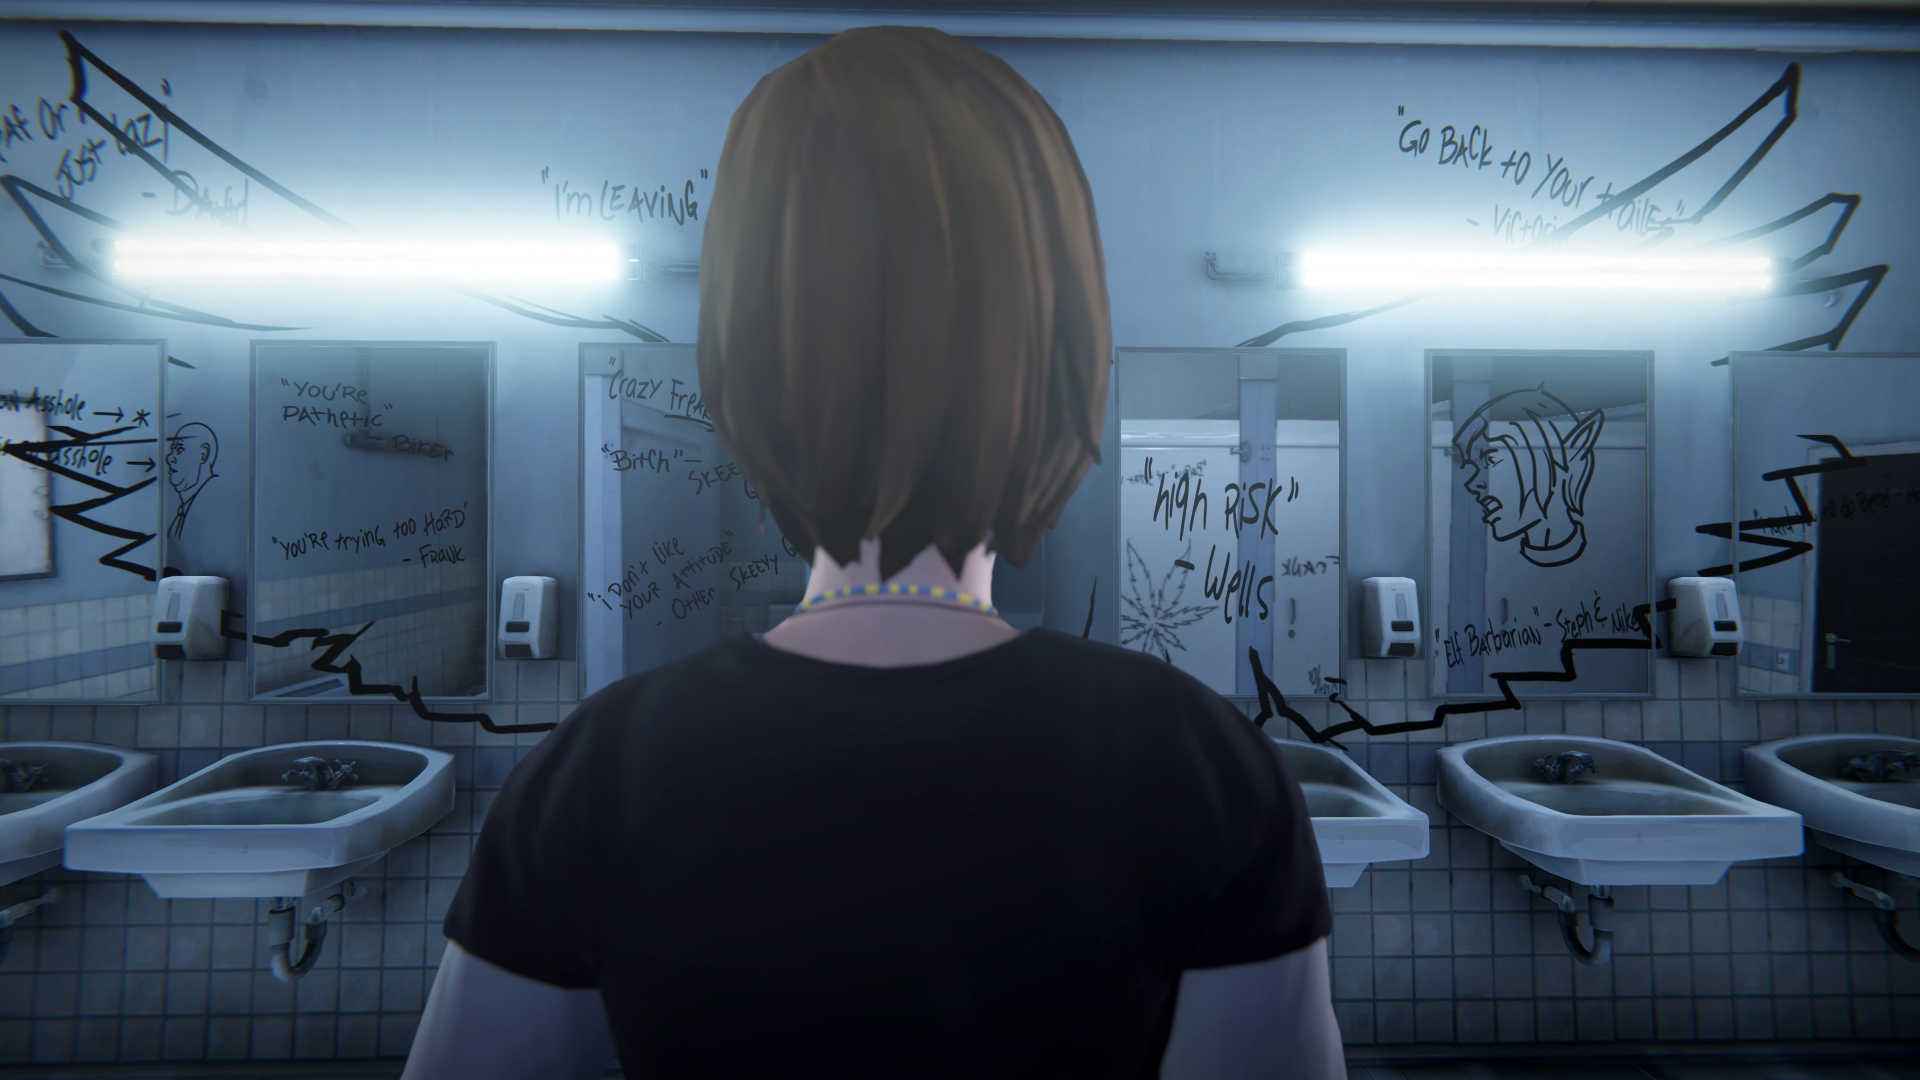 Life Is Strange: Before The Storm Episode 2 (PS4) - the troubled life of Chole Price